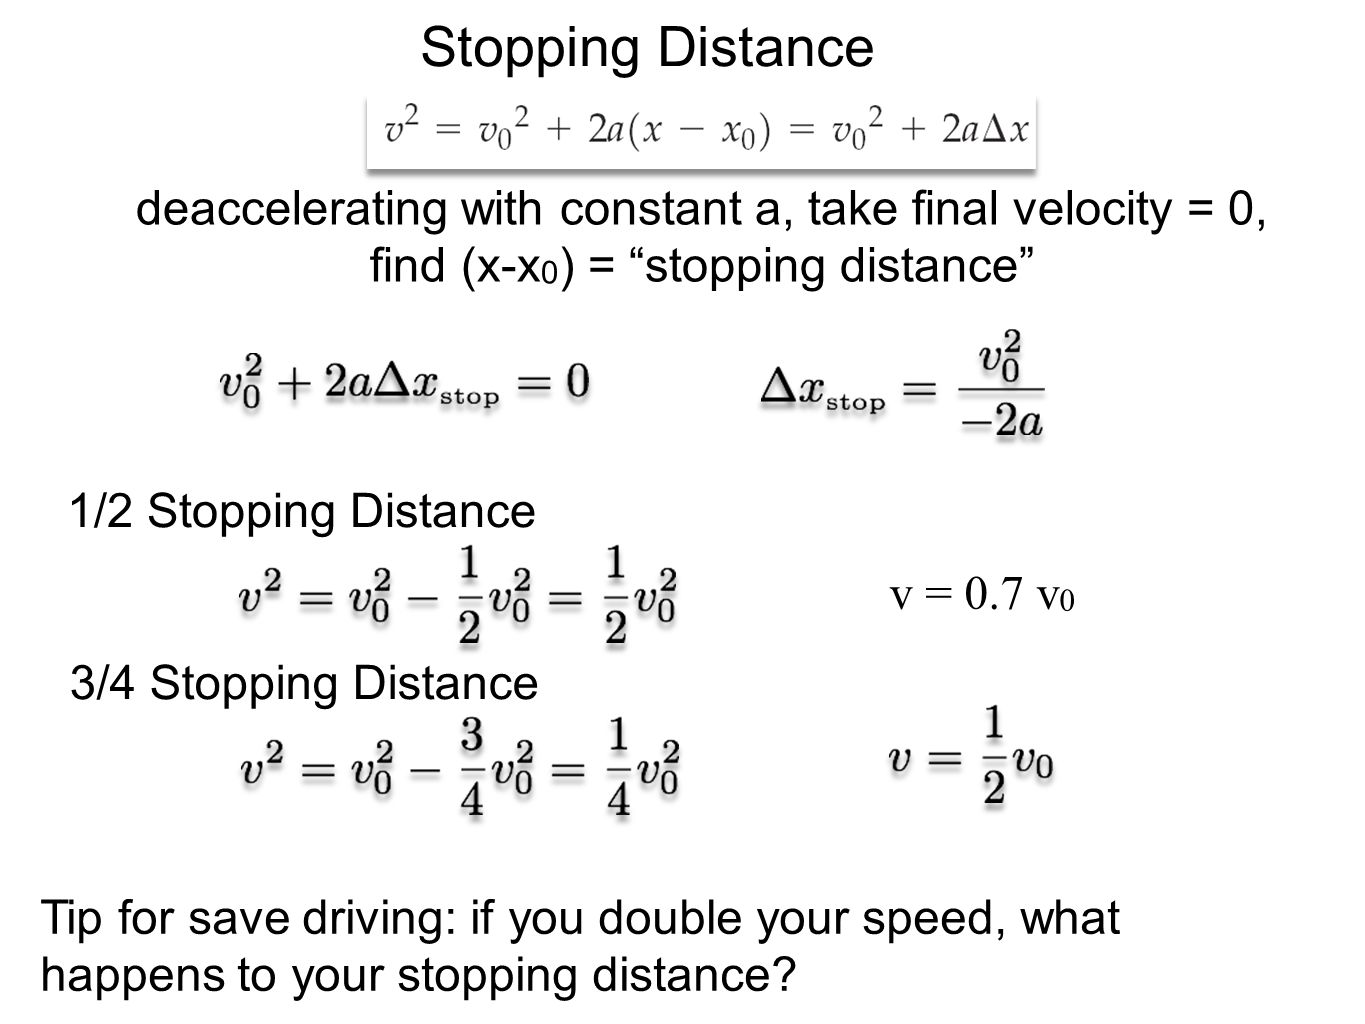 Stopping Distance deaccelerating with constant a, take final velocity = 0, find (x-x0) = stopping distance